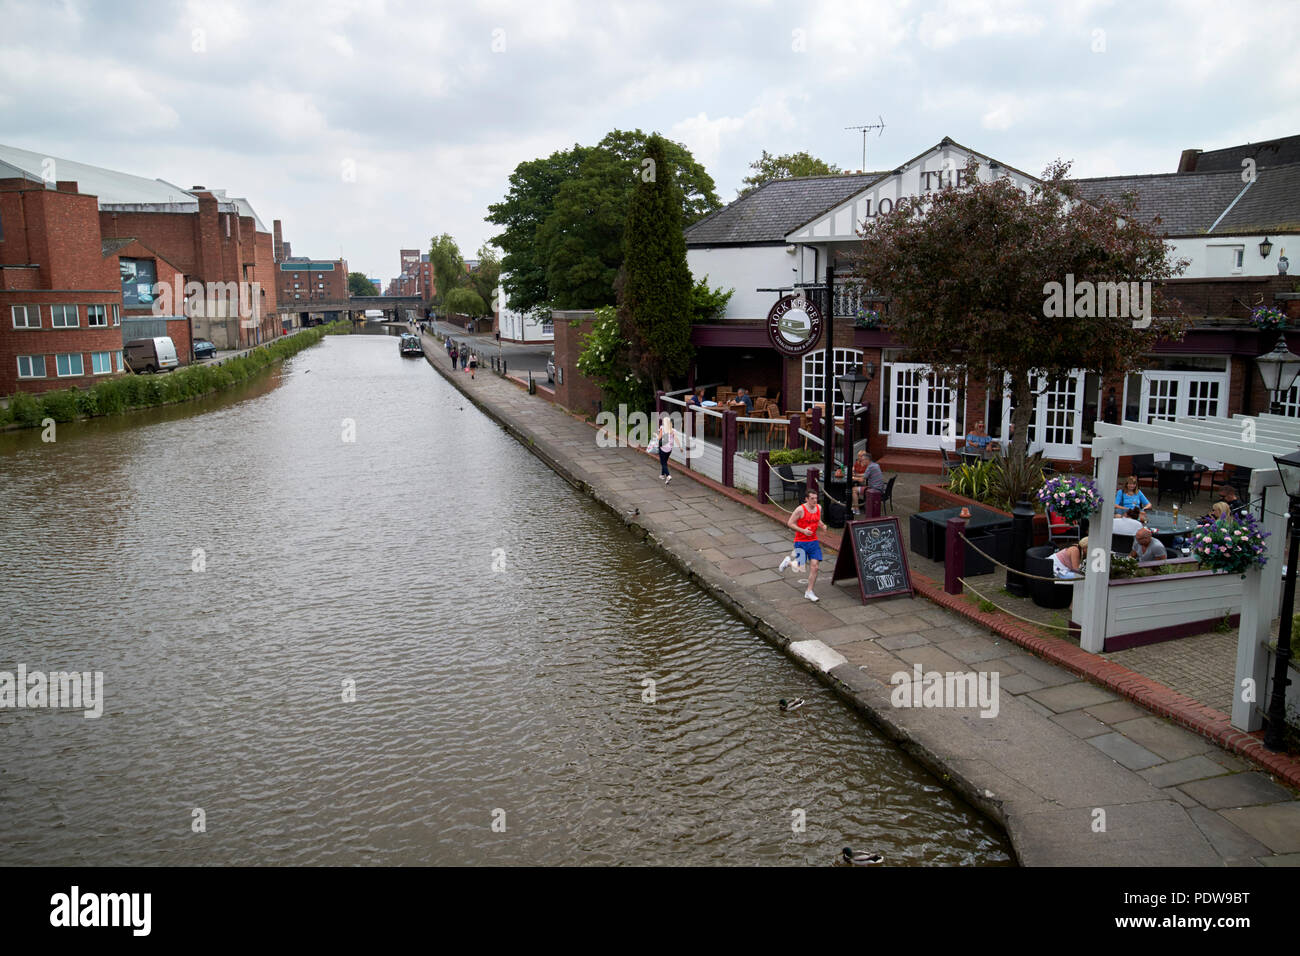 Shropshire union canal main line and lock keeper pub canal side chester cheshire england uk Stock Photo